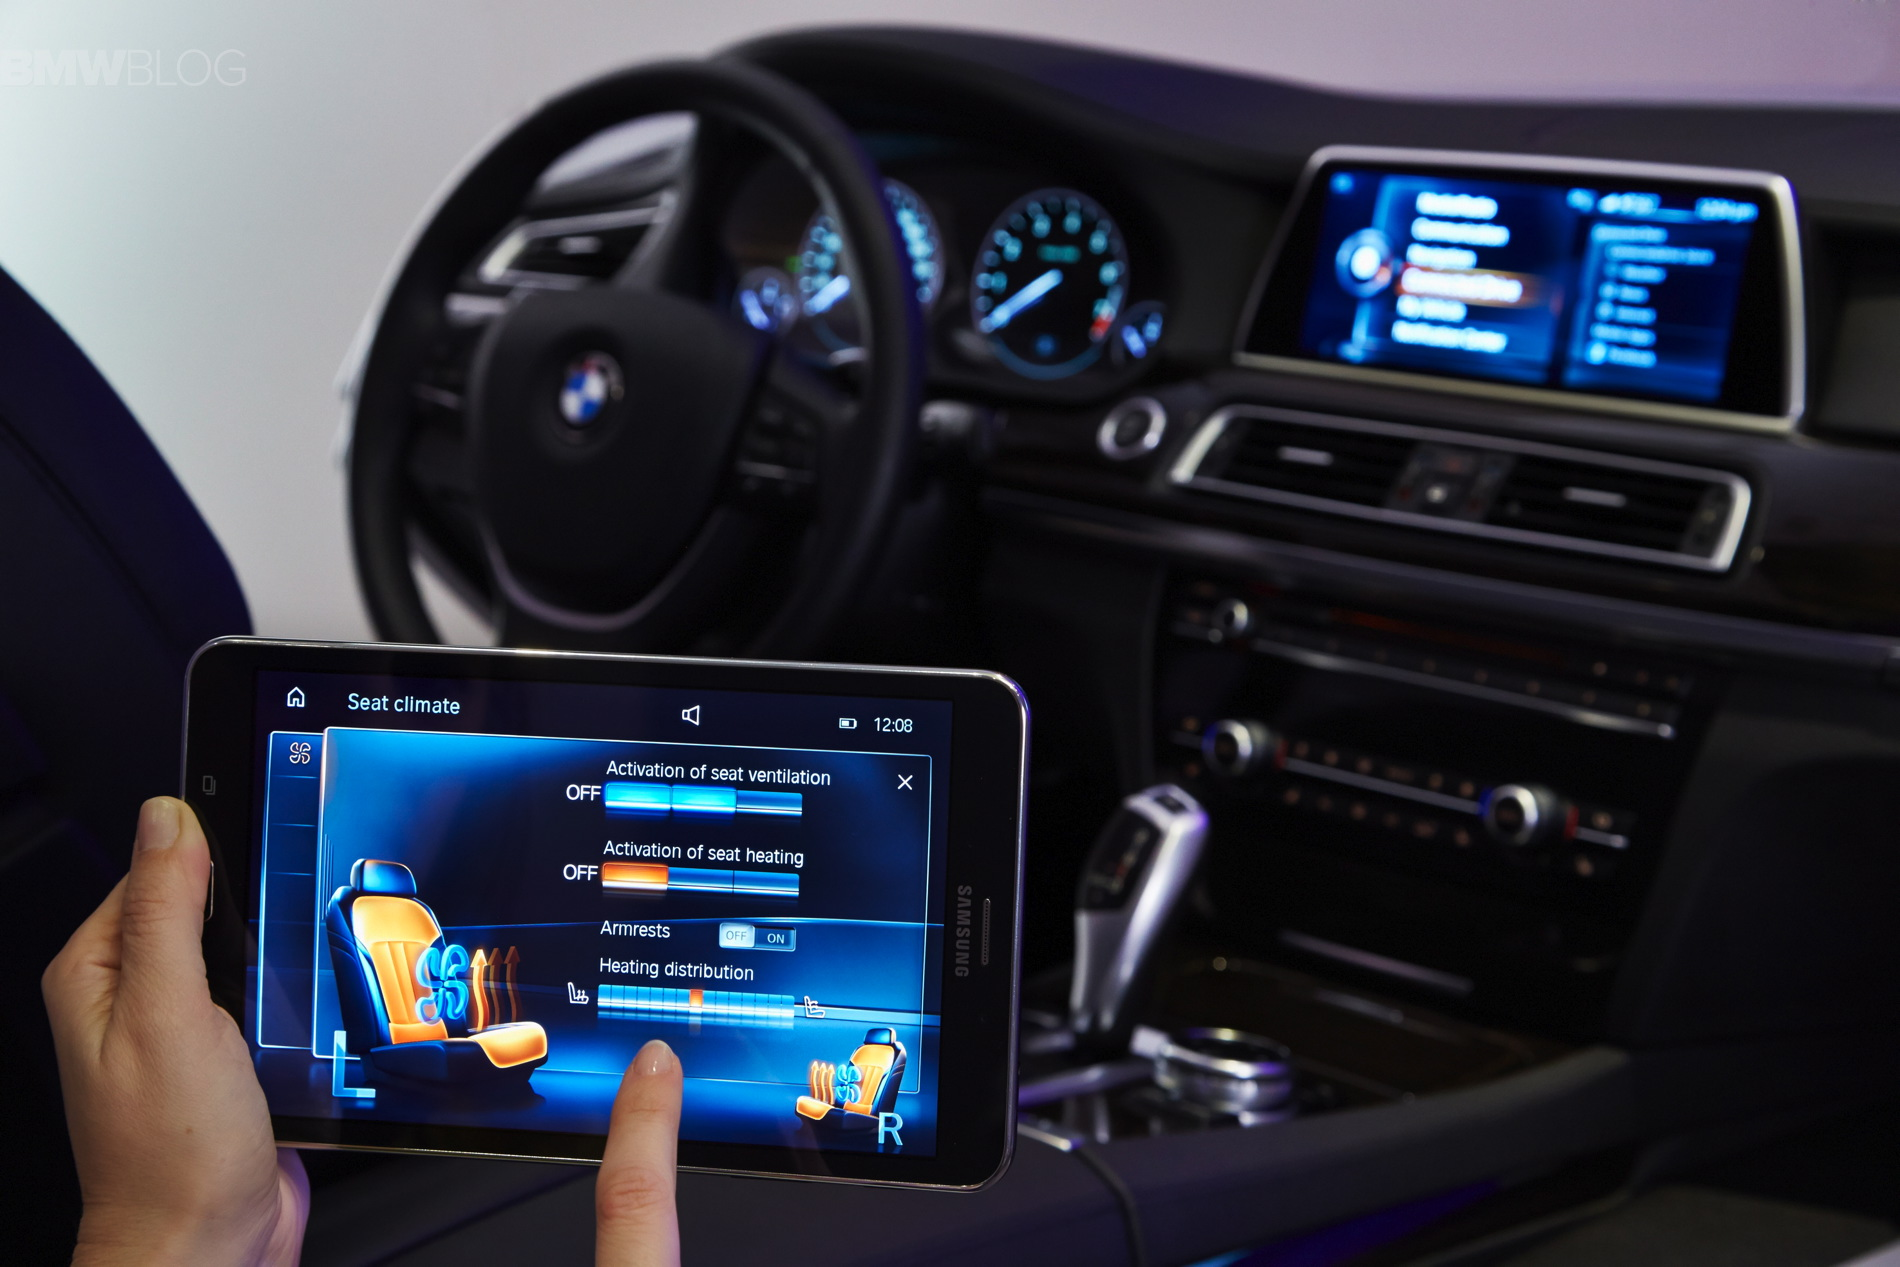 Bmw Introduces The Touch Command Feature Using A Samsung